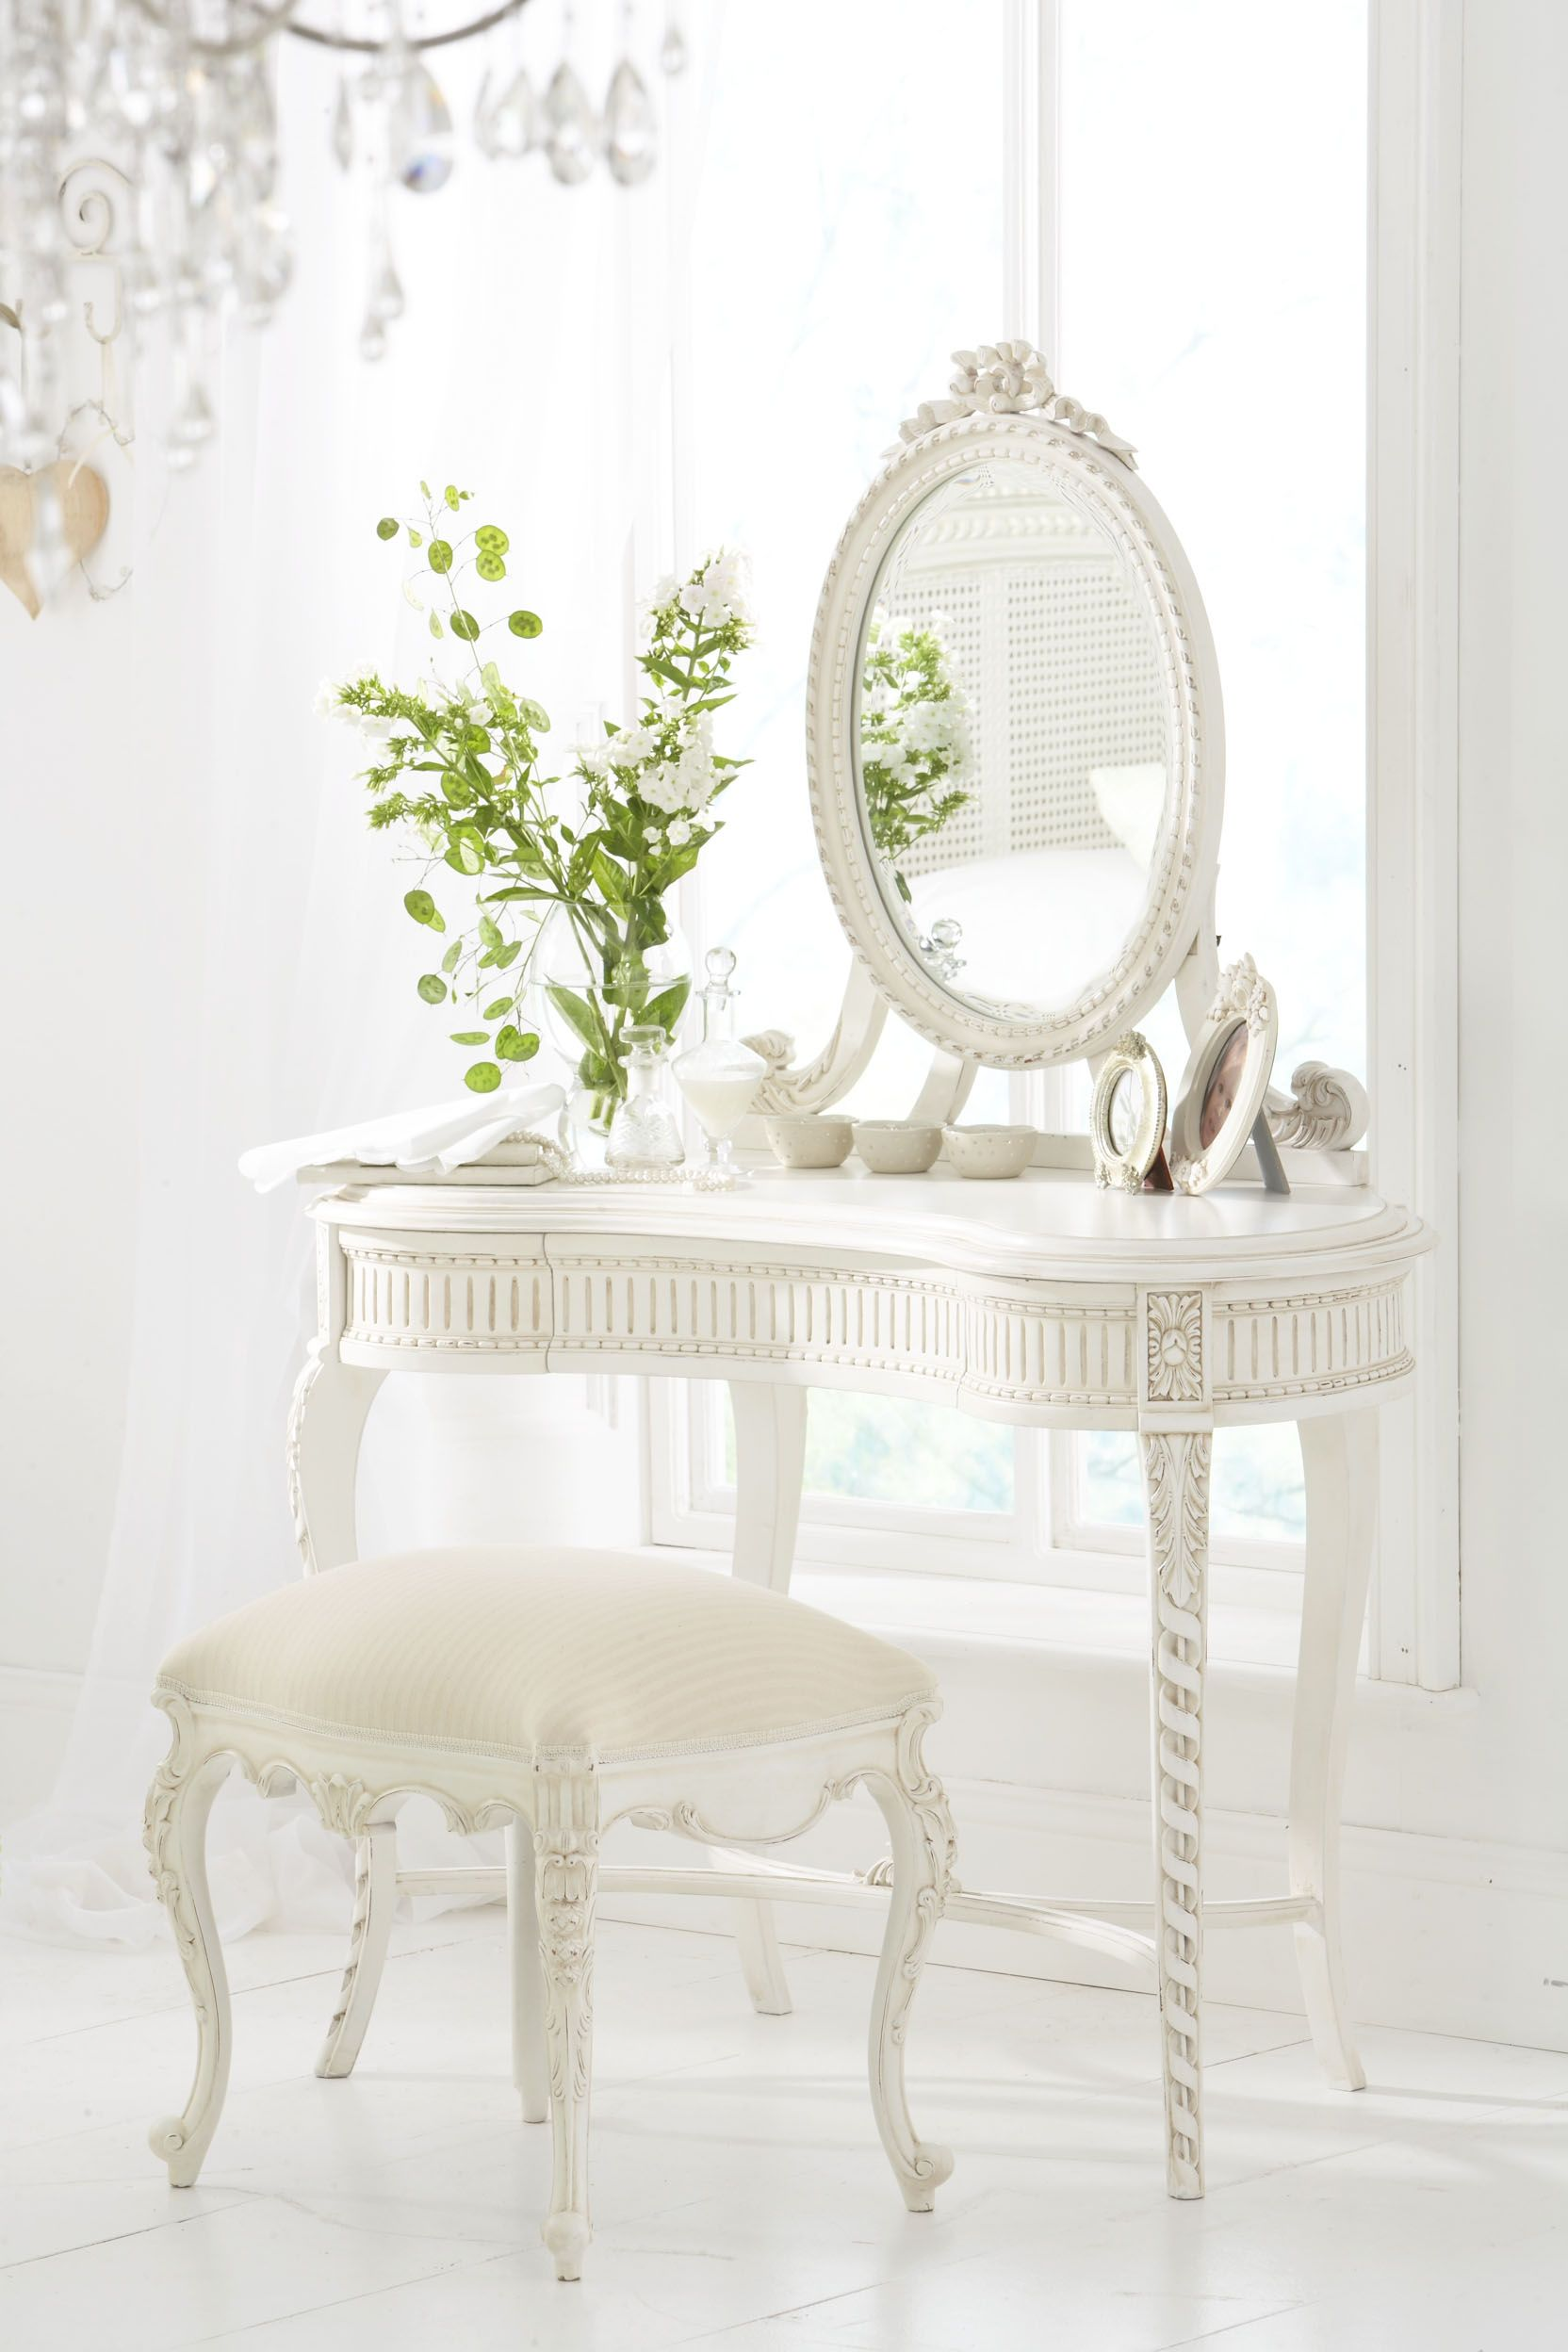 Lola Carved Wooden Dressing Table With Mirror Antique White With Images Childrens Bedroom Furniture Childrens Dressing Table Pretty Furniture